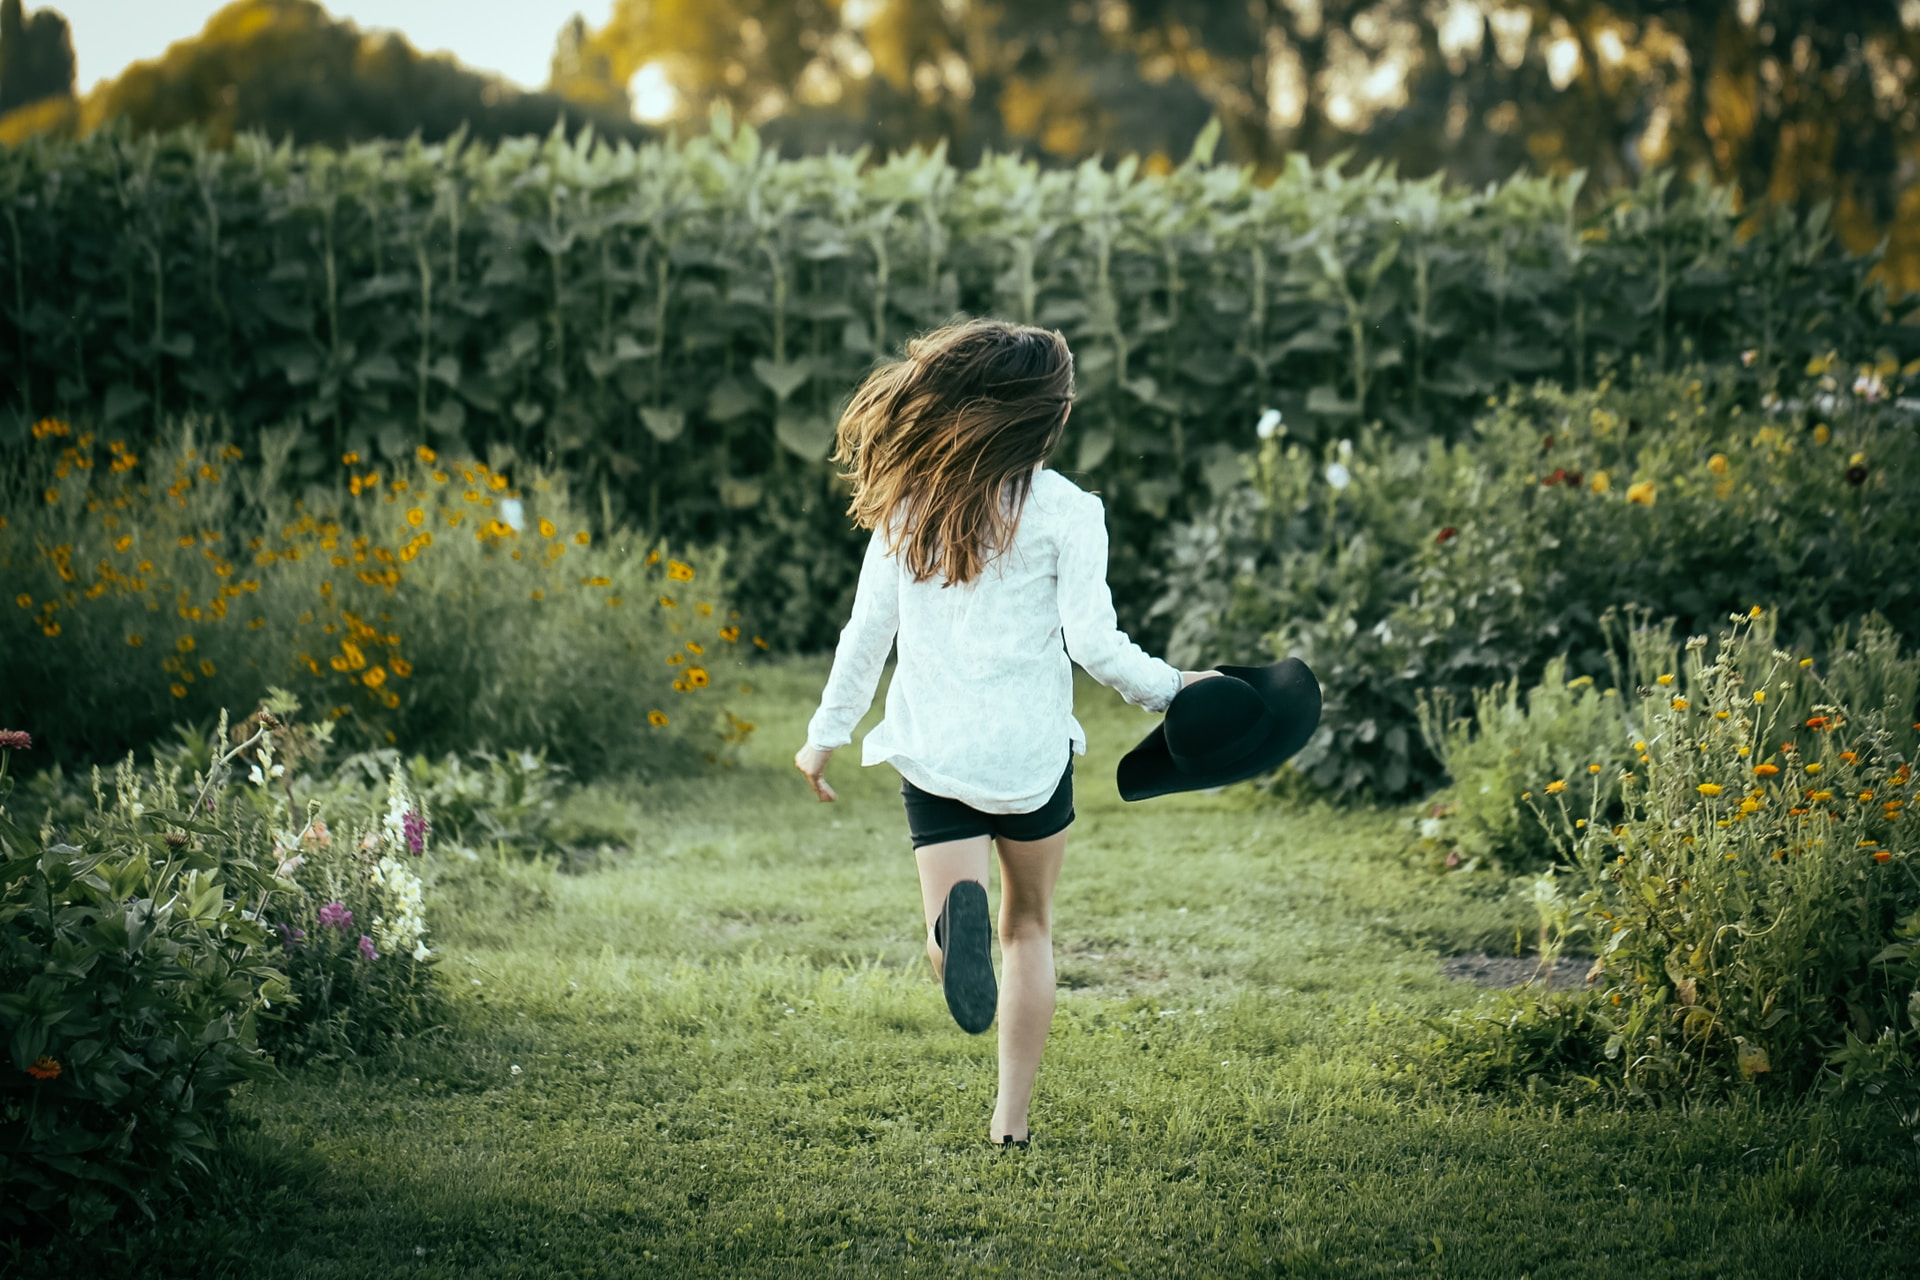 woman running on grass surrounded with flowers during daytime